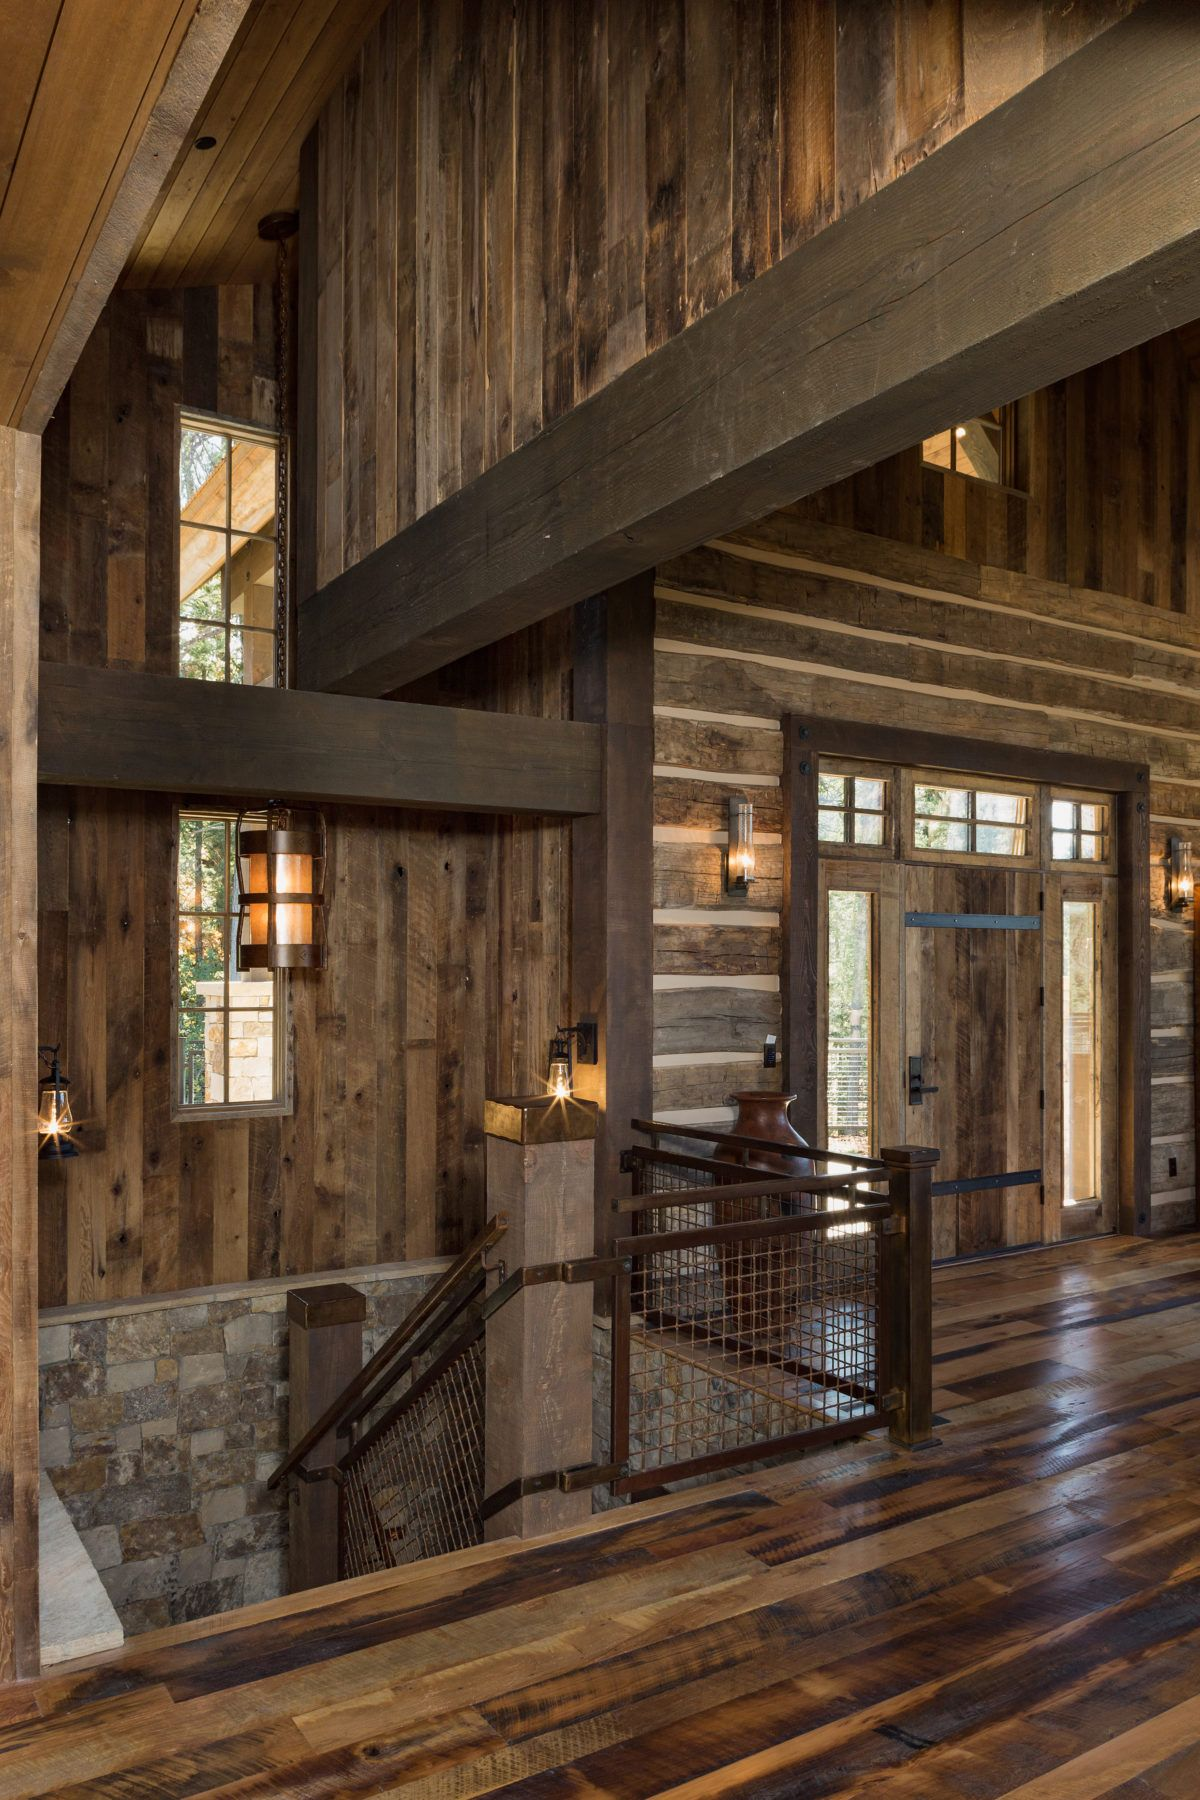 Cliffside Mining Style Home Photo Gallery | Ranch house ...